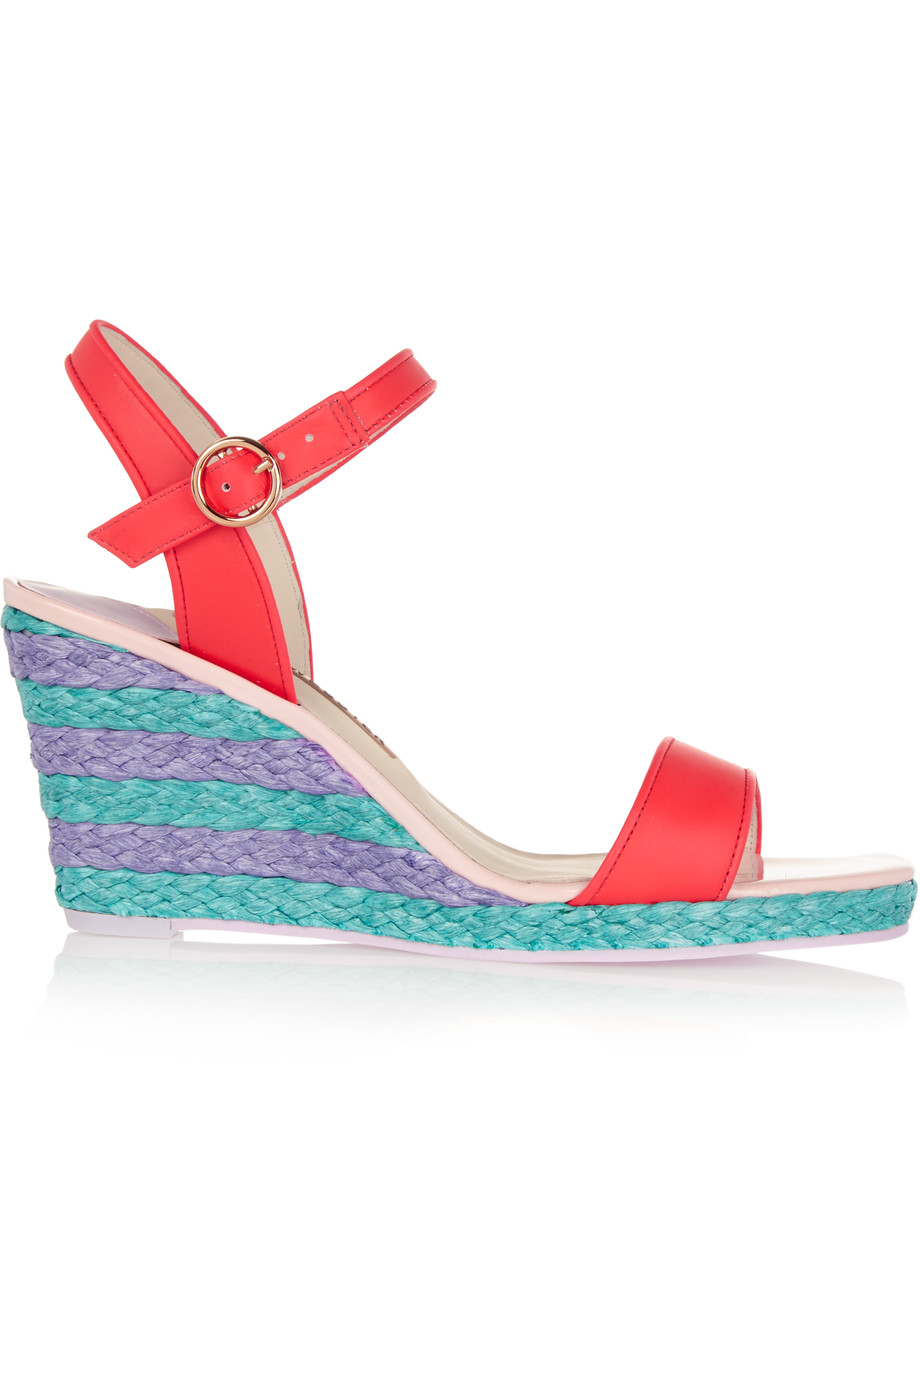 SOPHIA WEBSTER Lucita Leather Espadrille Wedge Sandals at THE OUTNET.COM